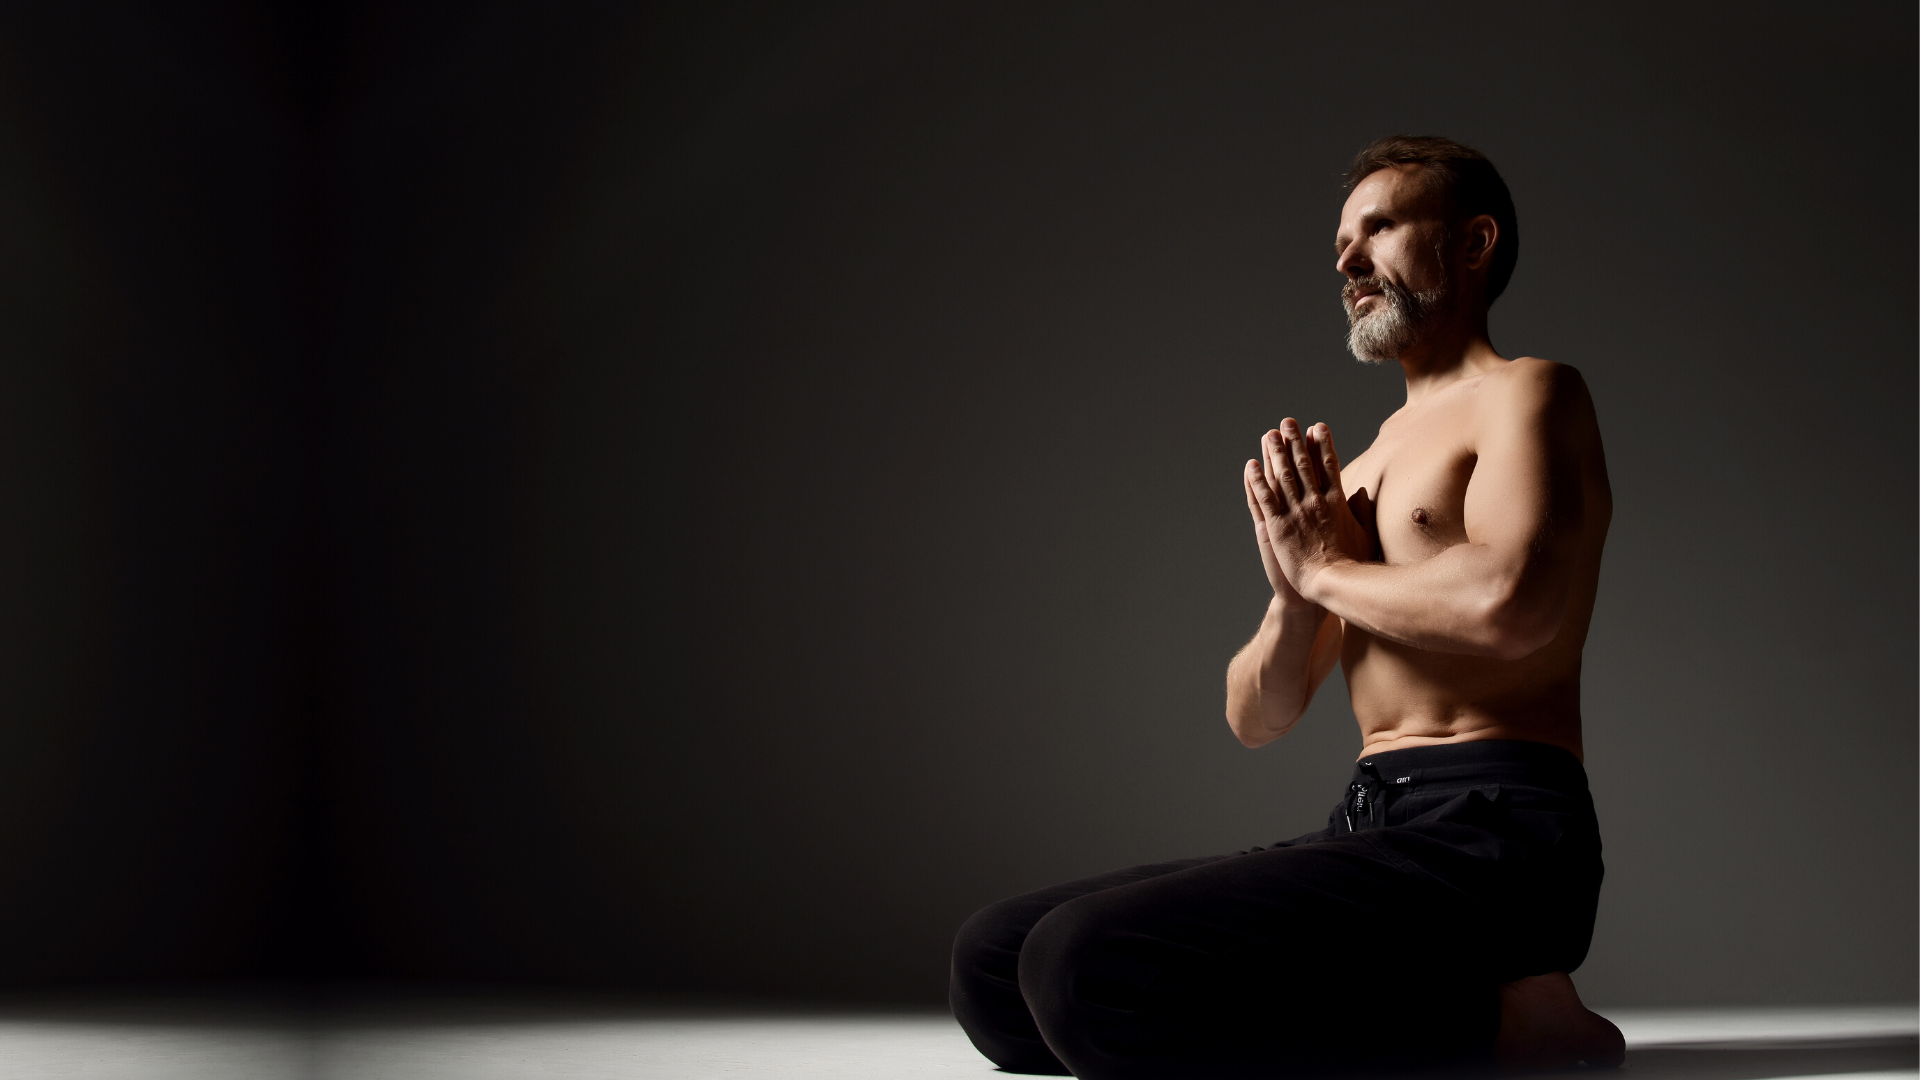 Male yoga student practicing meditation and yogic breathing pranayama.